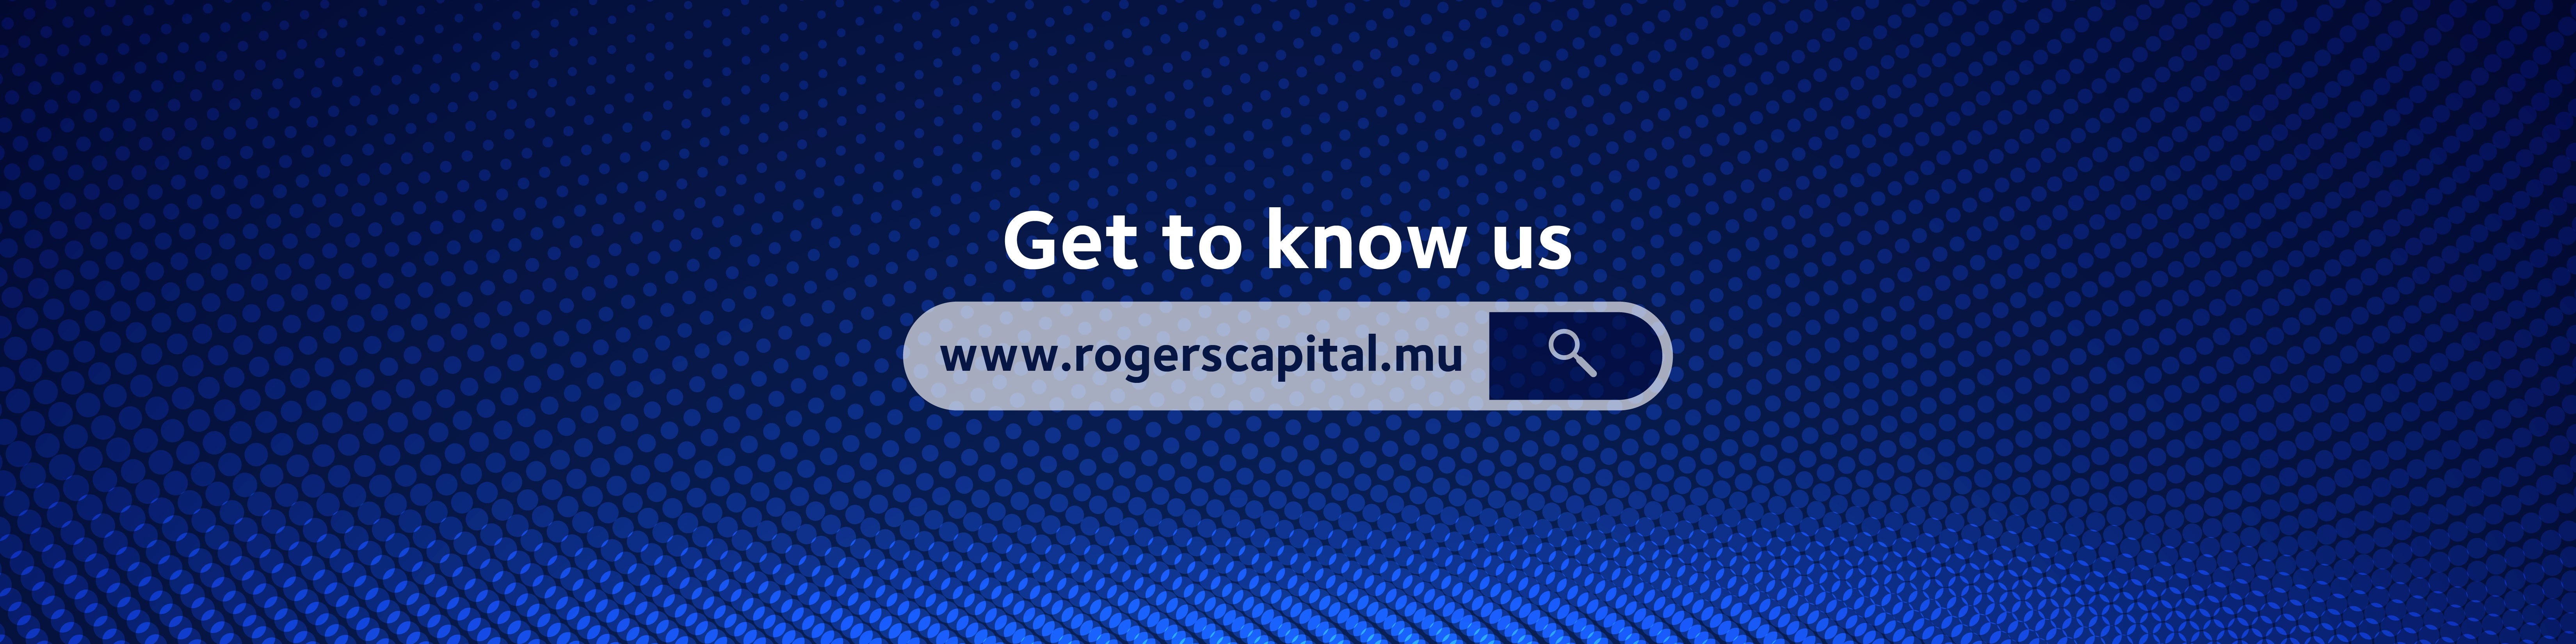 Rogers Capital | LinkedIn